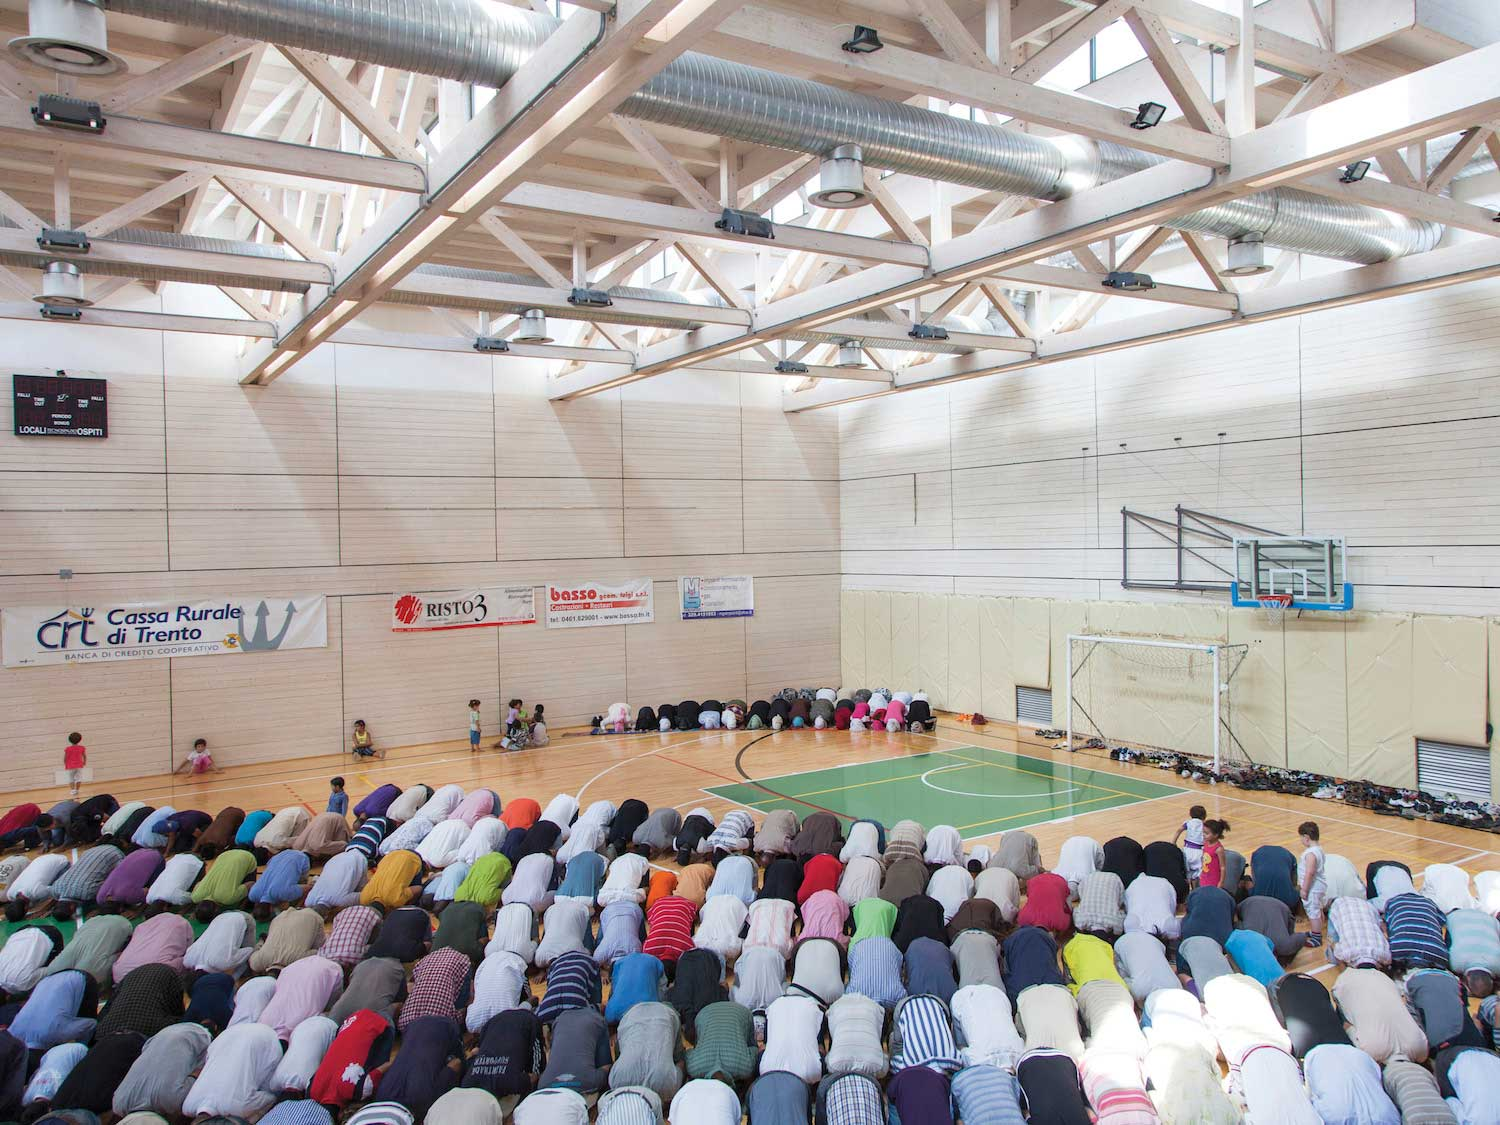 A stadium used as a makeshift place of worship for Muslims in the Province of Trento, Italy.